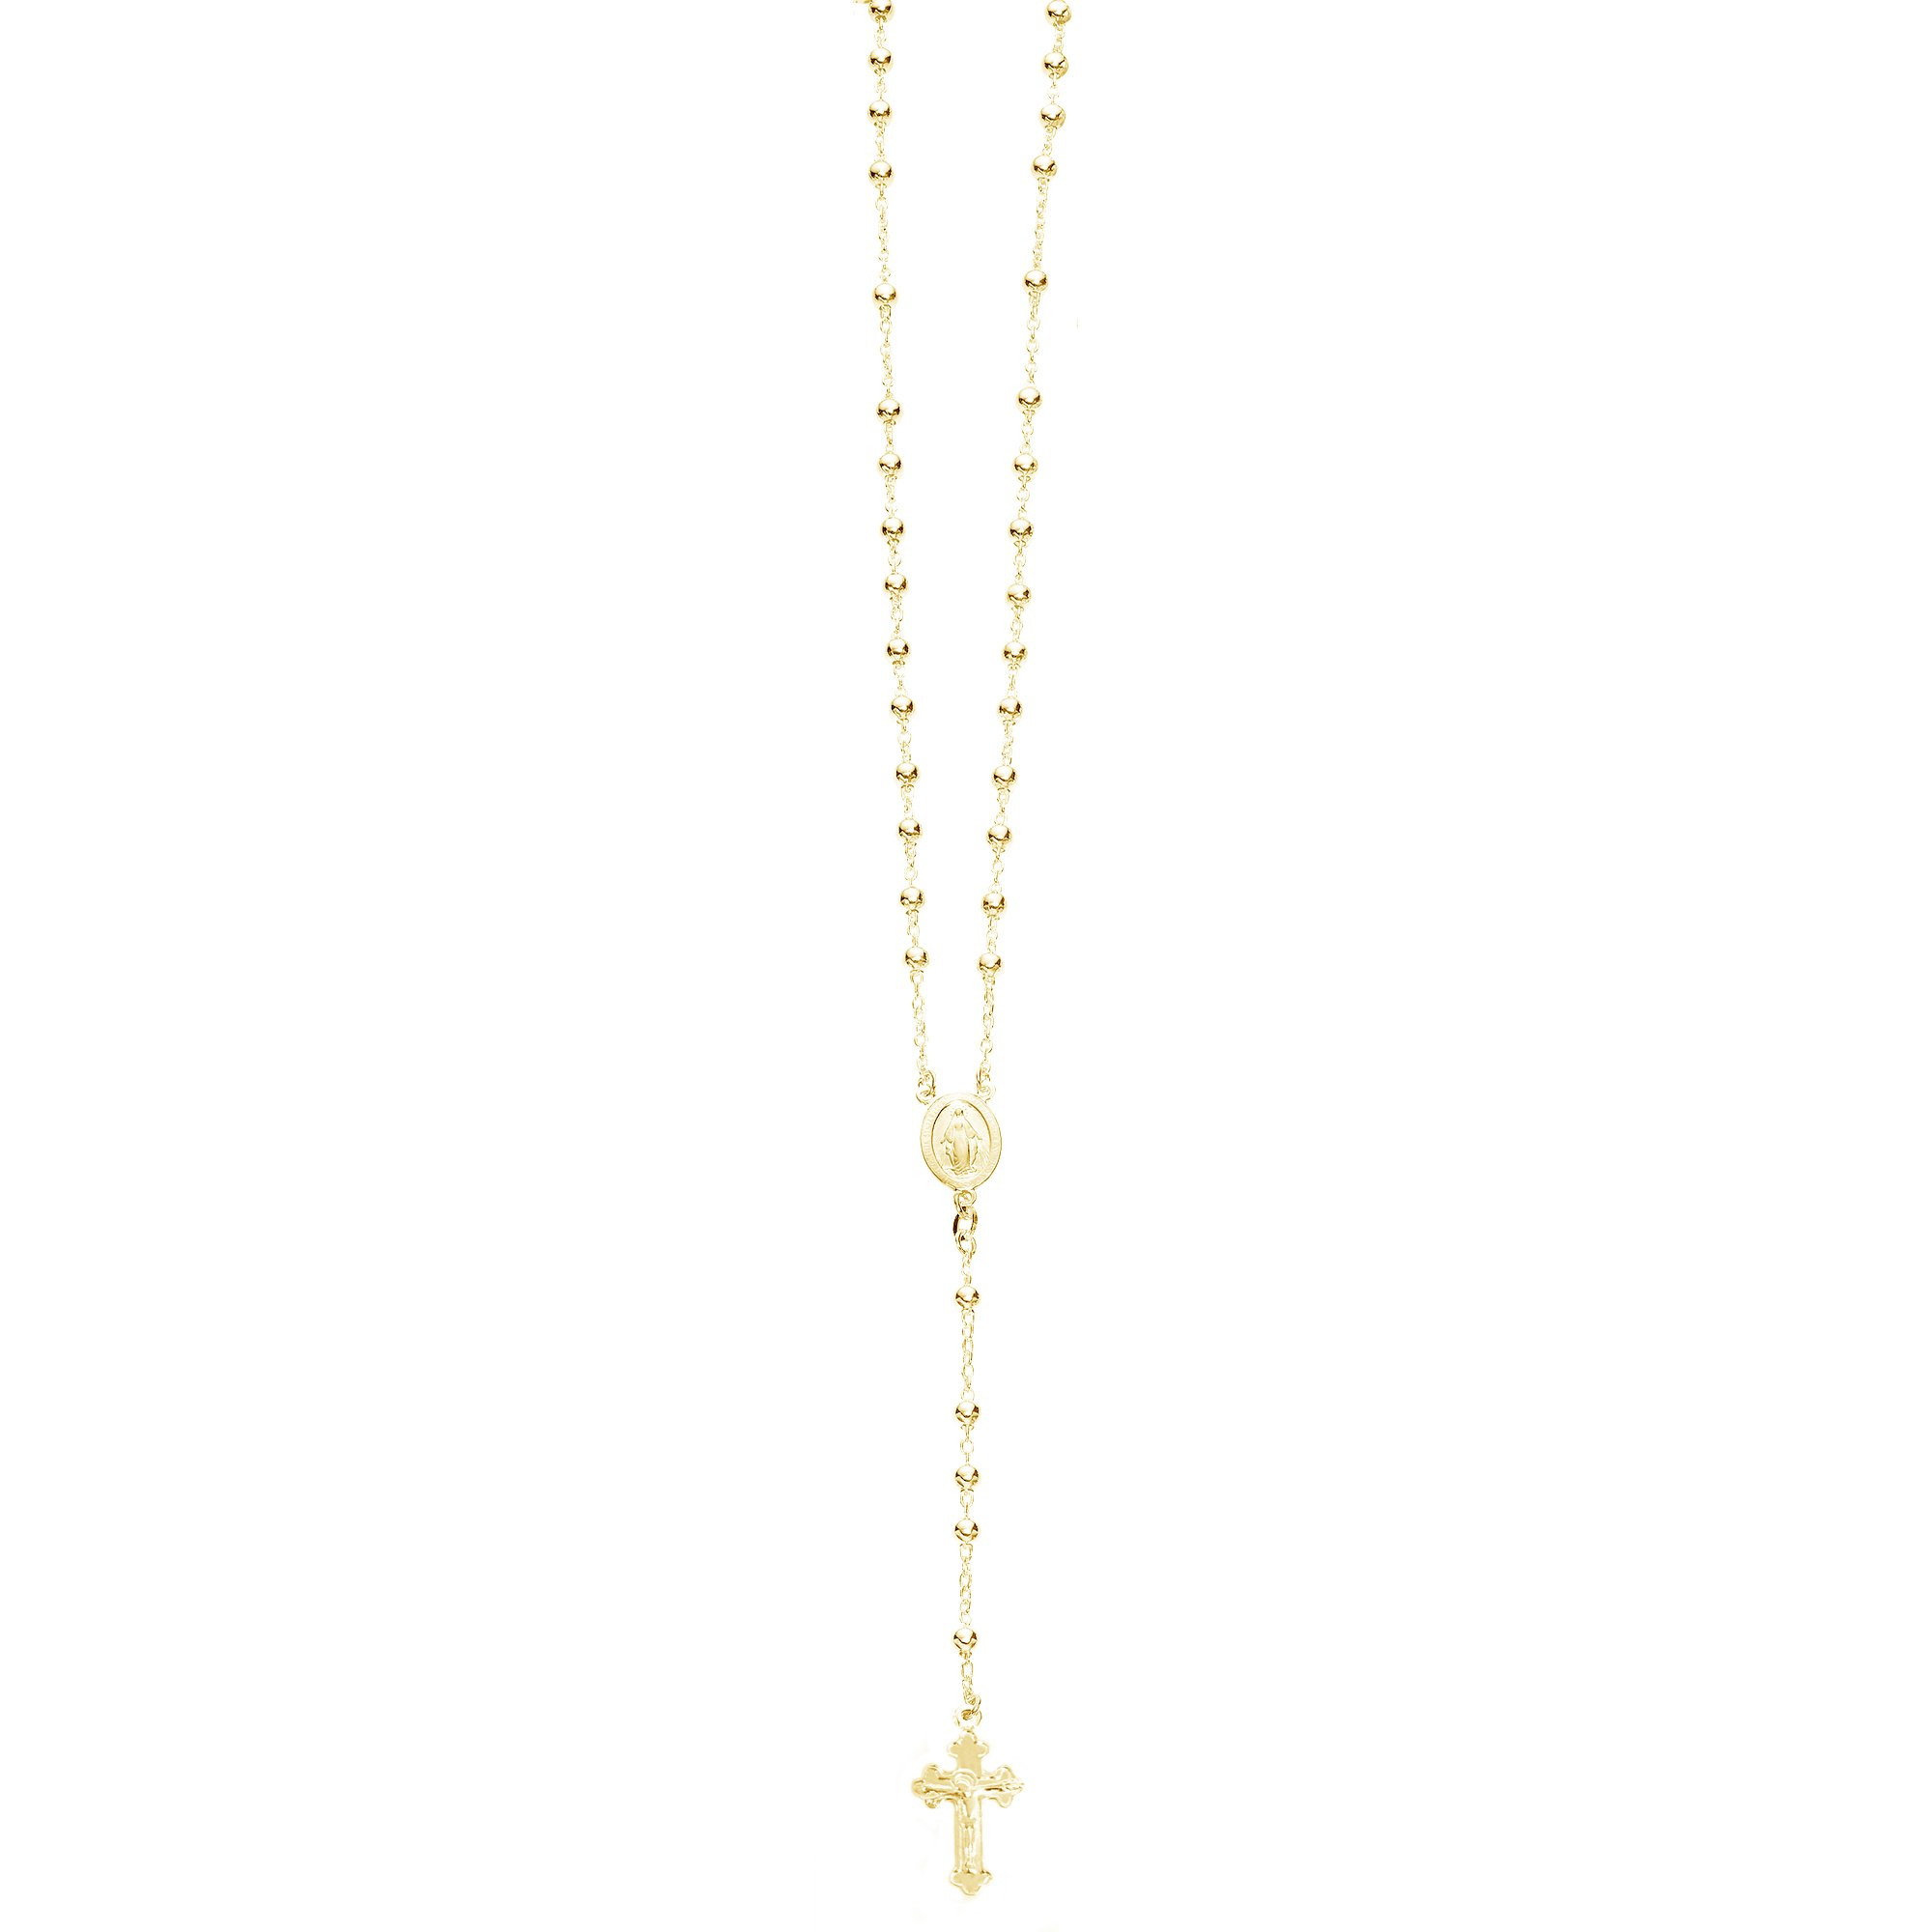 Ritastephens Sterling Silver or Gold-tone Rosary Bead Necklace Virgin Mary Cross Made in Italy (30 Inches)